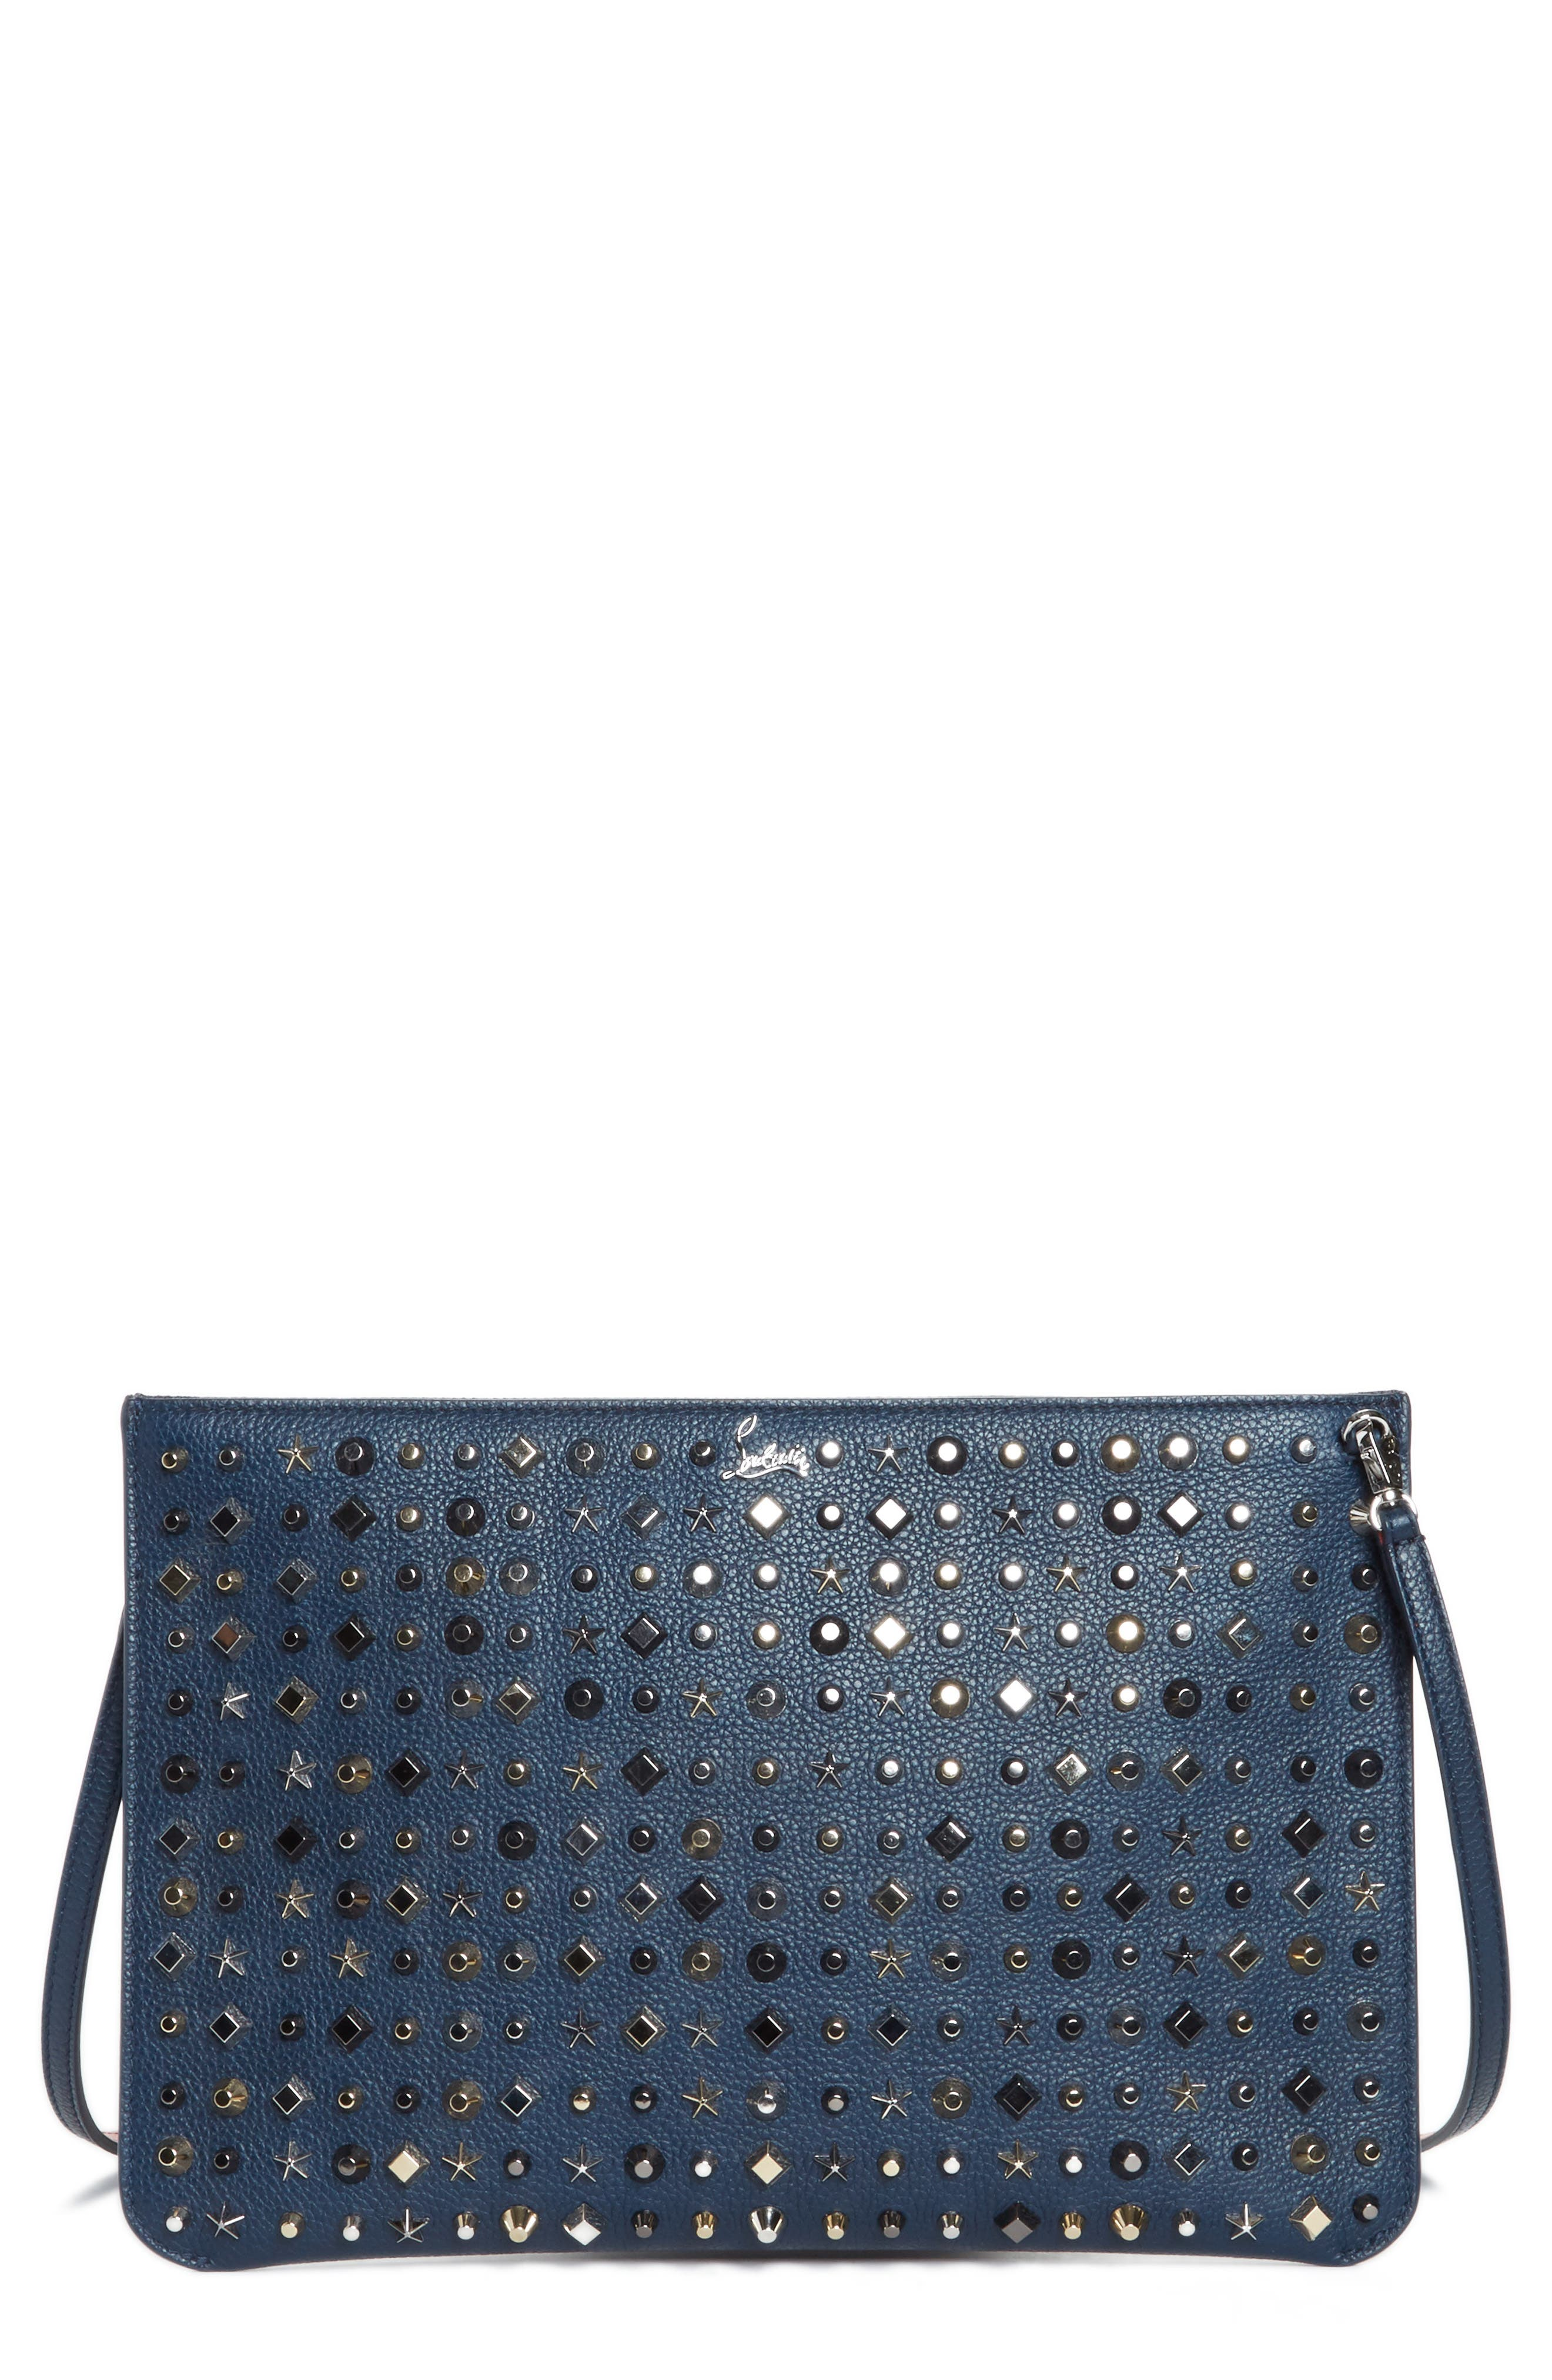 Loubiclutch Spiked Leather Clutch,                             Main thumbnail 1, color,                             419